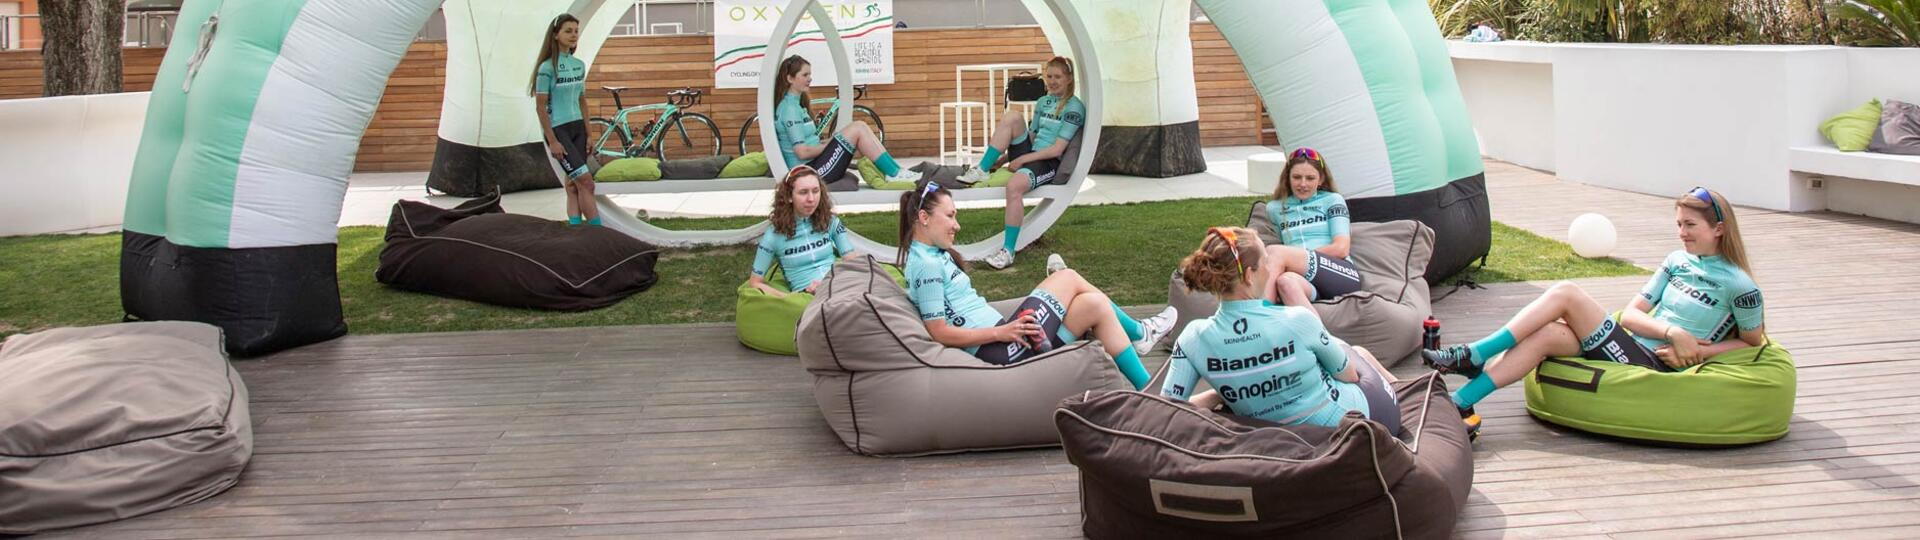 cycling.oxygenhotel it offerta-ambassador-2020 014